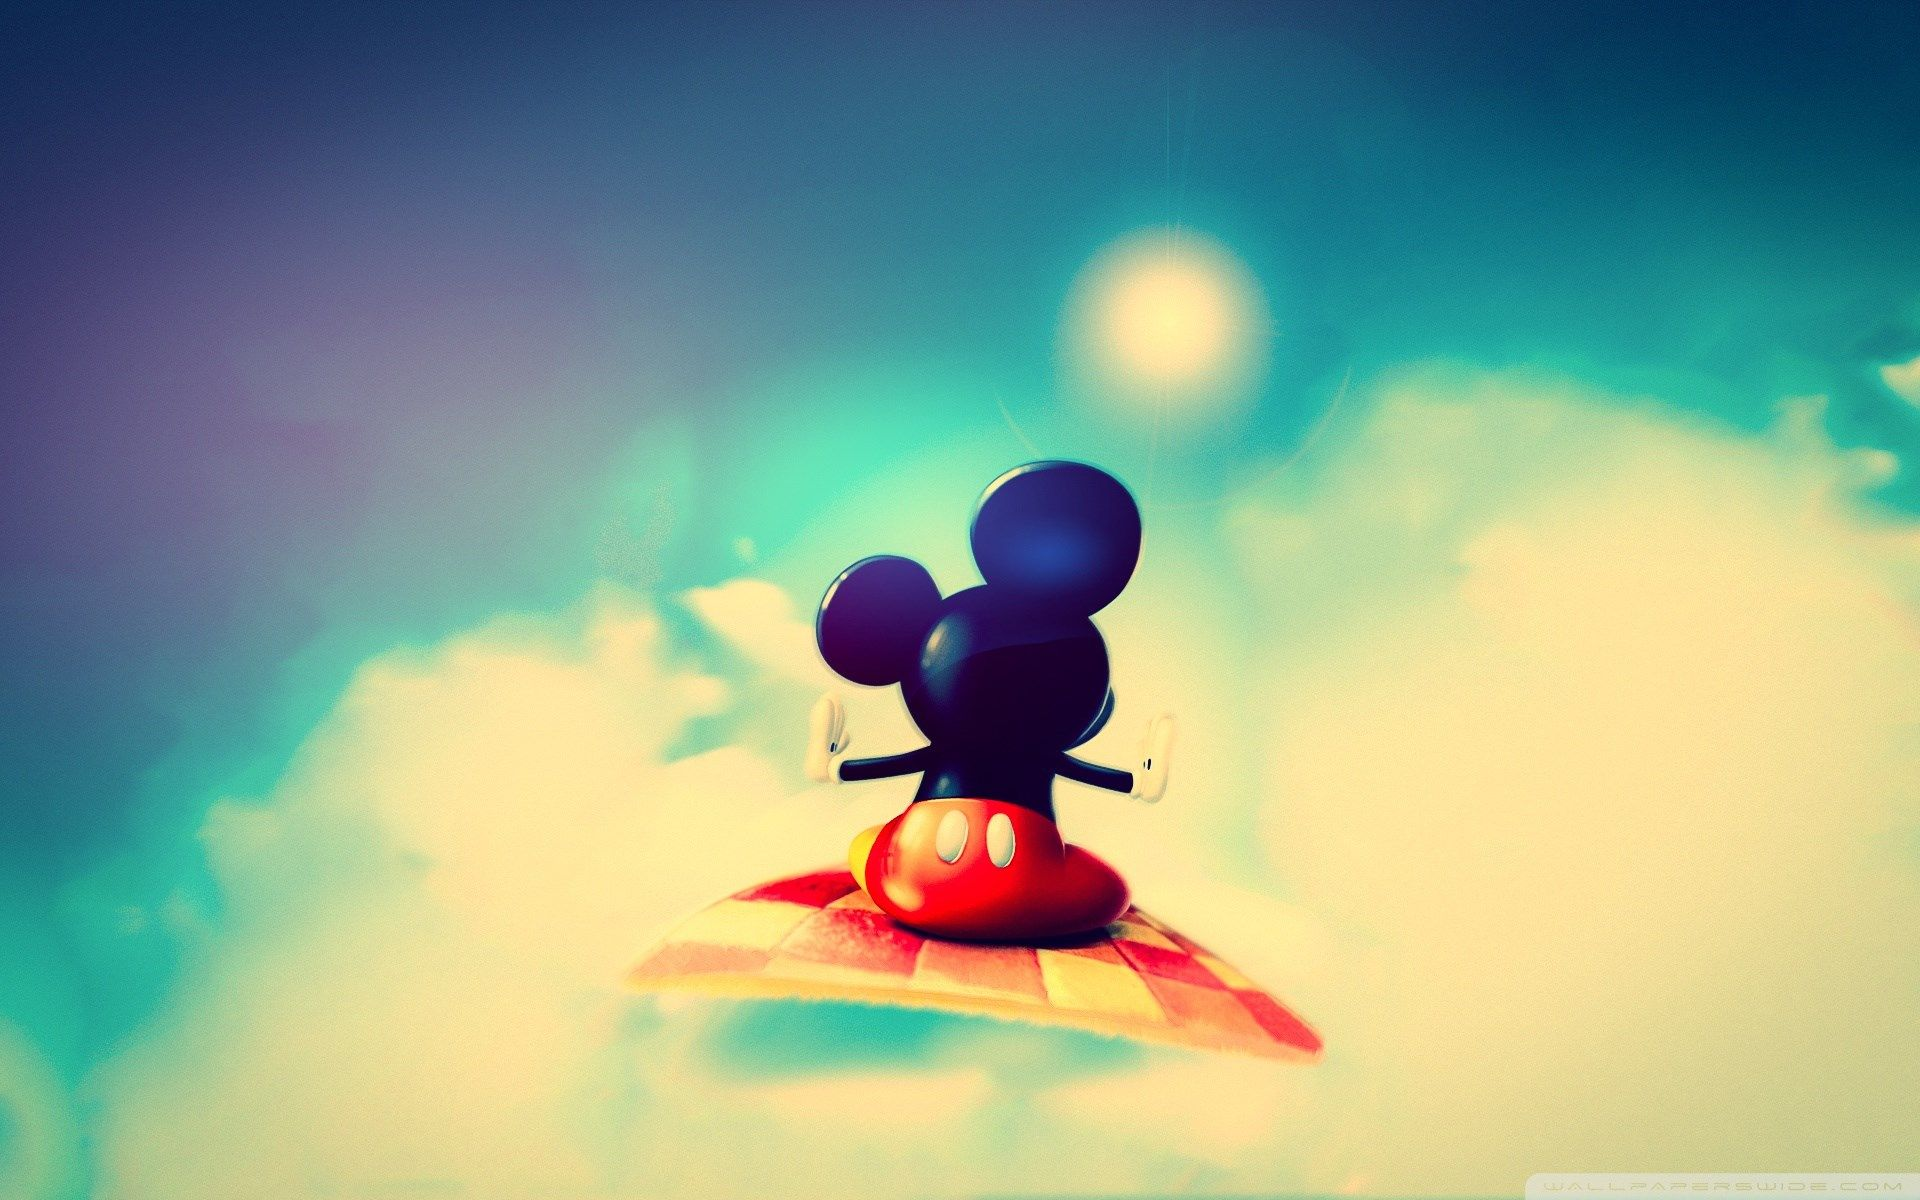 mickey mouse pic 1080p high quality - mickey mouse category